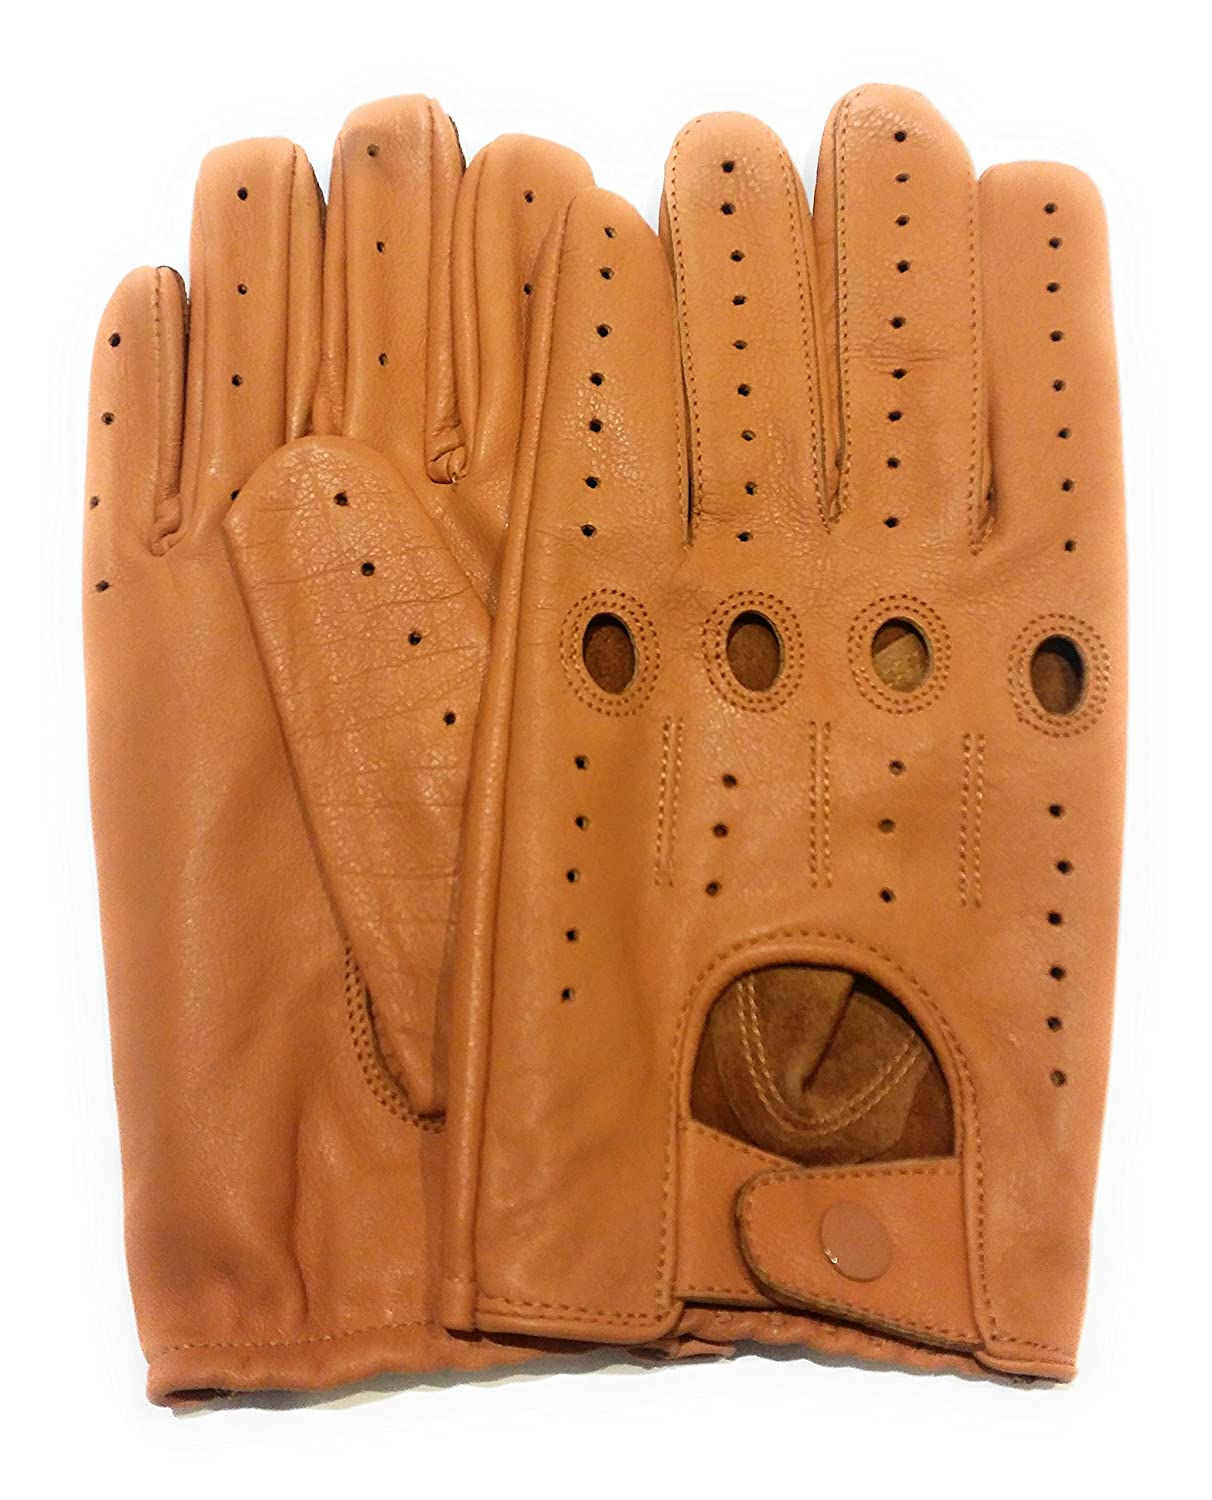 Sportsimpex Men's Leather Driving Gloves Tan (Small, Tan)